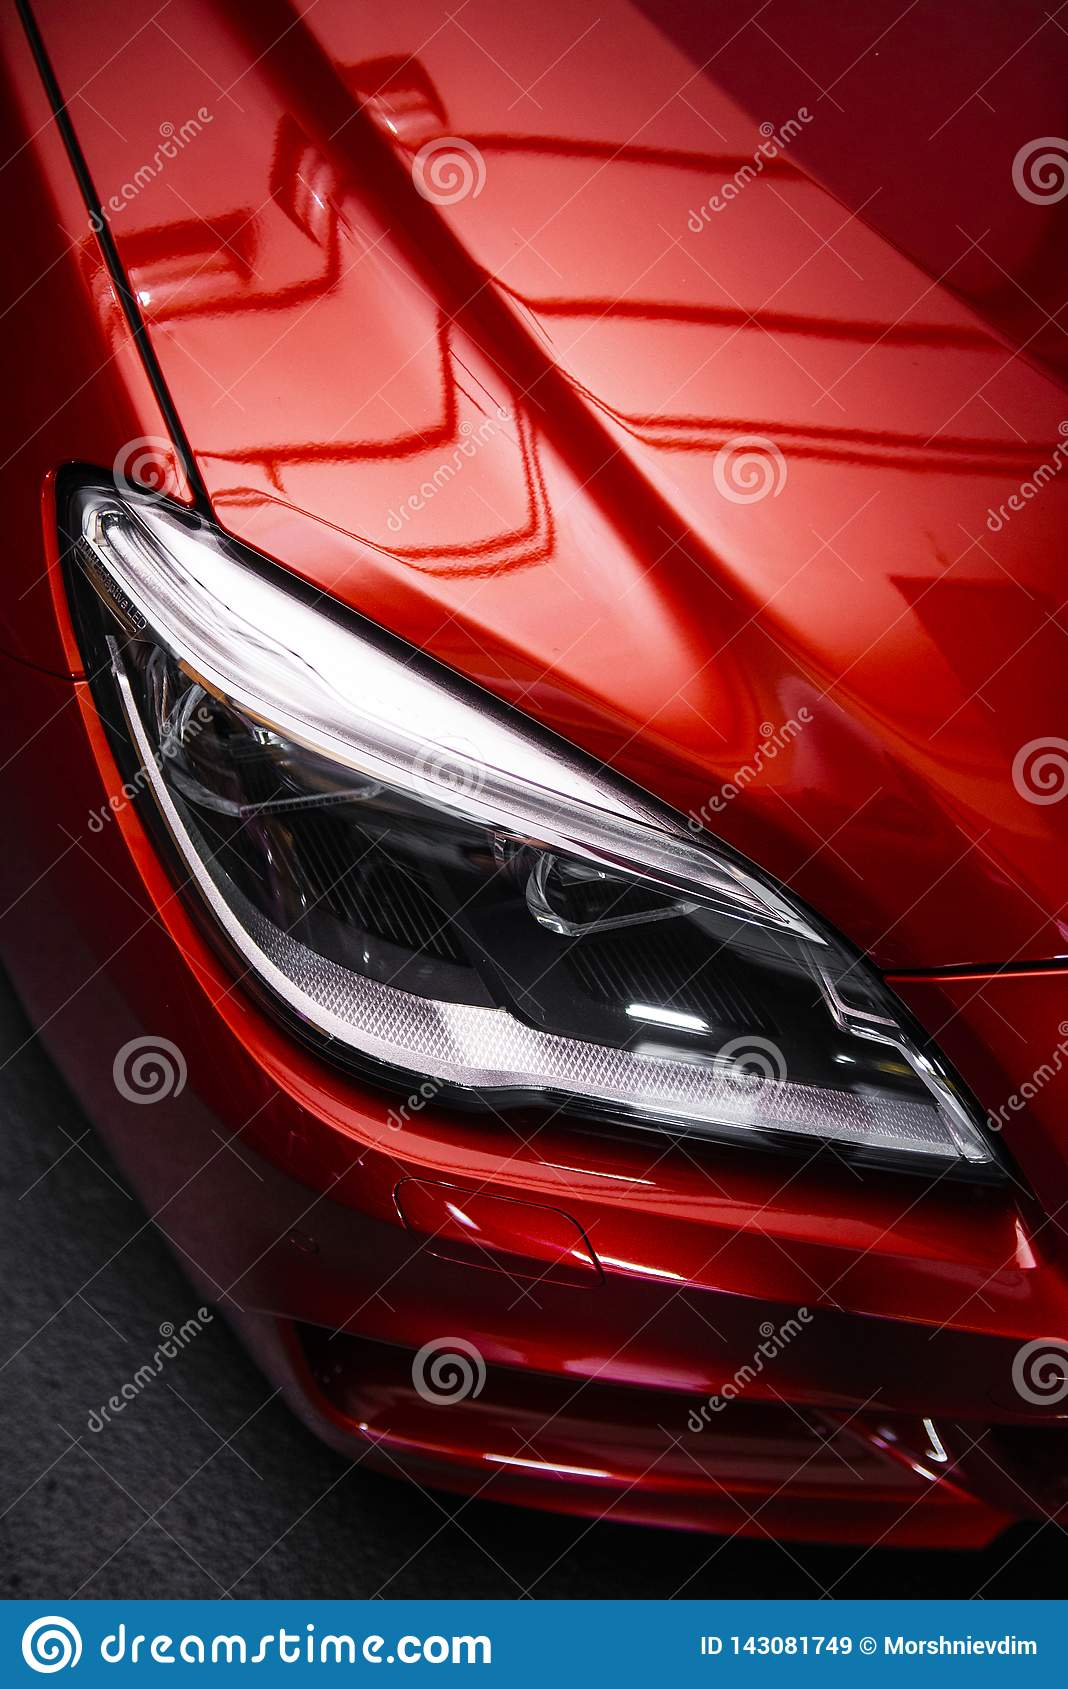 Back headlight of a modern luxury red car, auto detail, car care concept in the garage